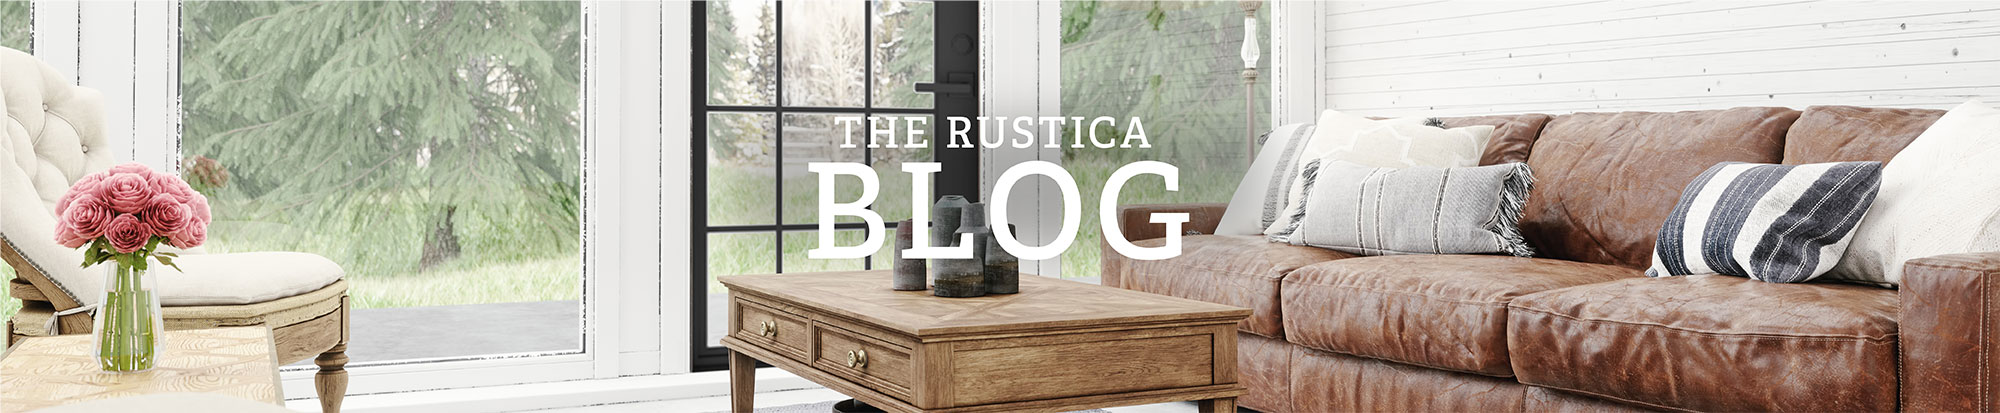 10 Creative Project Ideas For Repurposing Old Doors Rustica